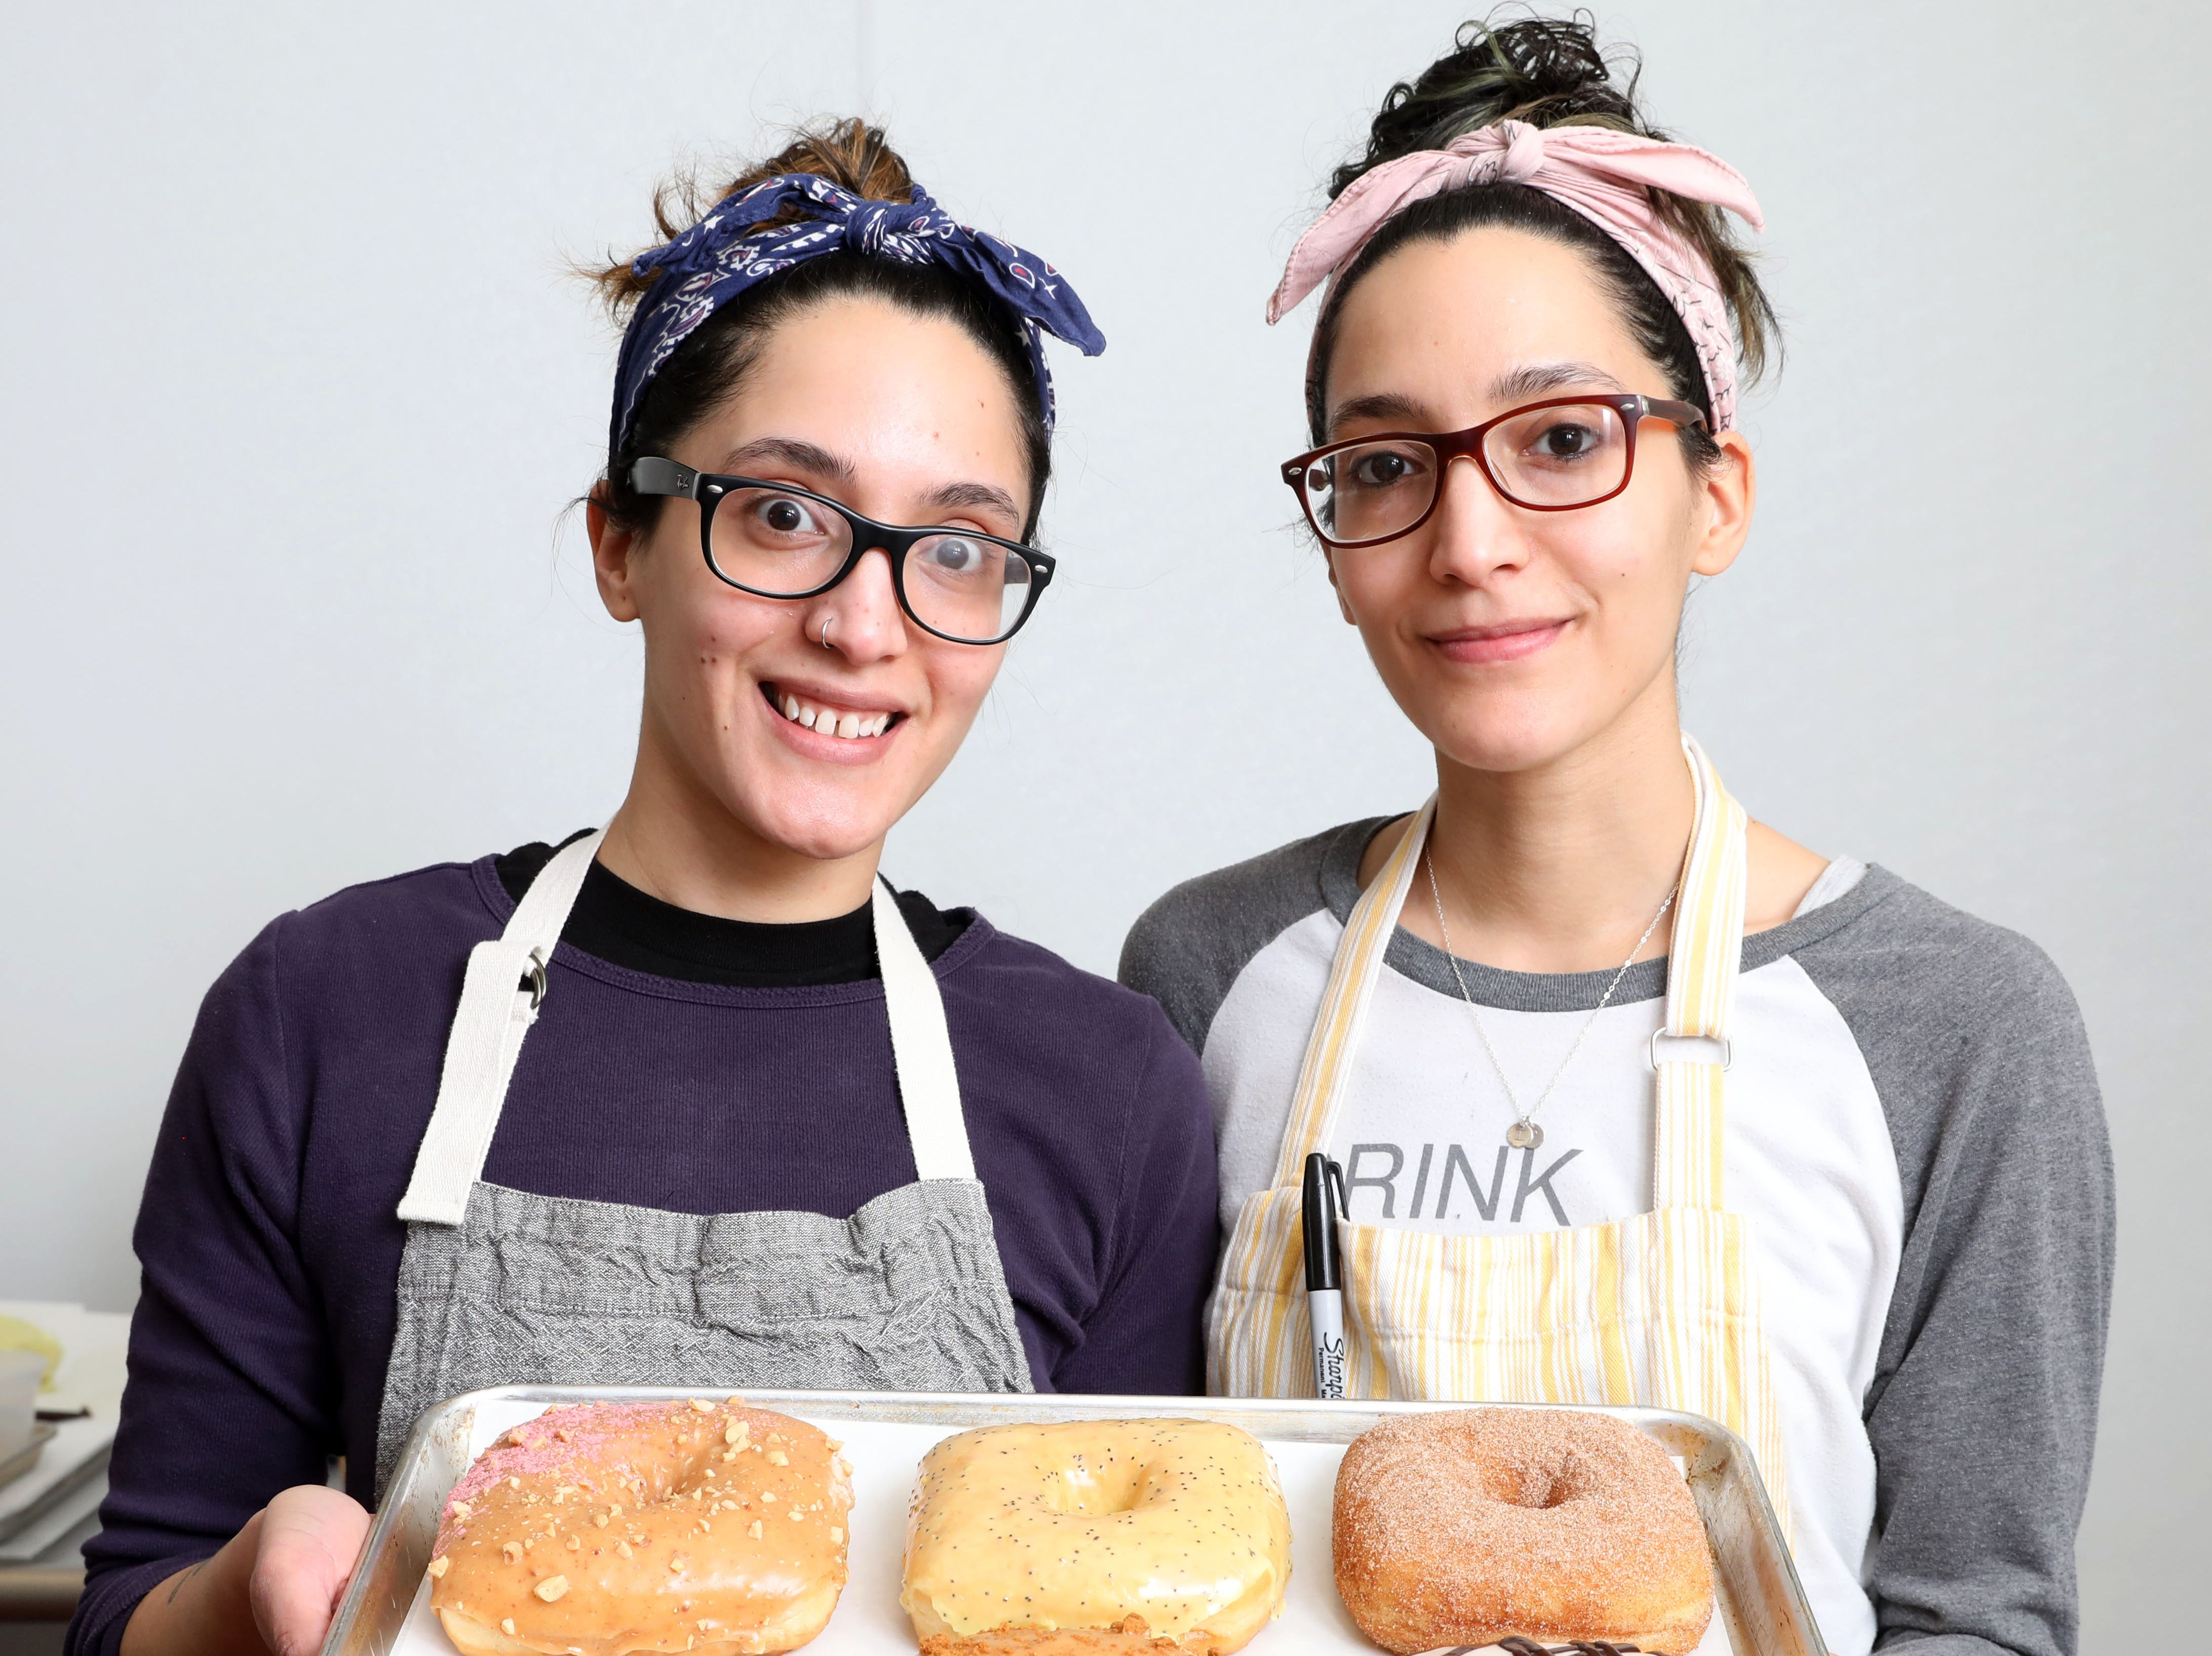 Brittany and Justine Soto, the twin sisters behind Peaceful Provisions bakery specializing in vegan doughnuts, in their commercial kitchen in Tarrytown Feb. 18, 2019.